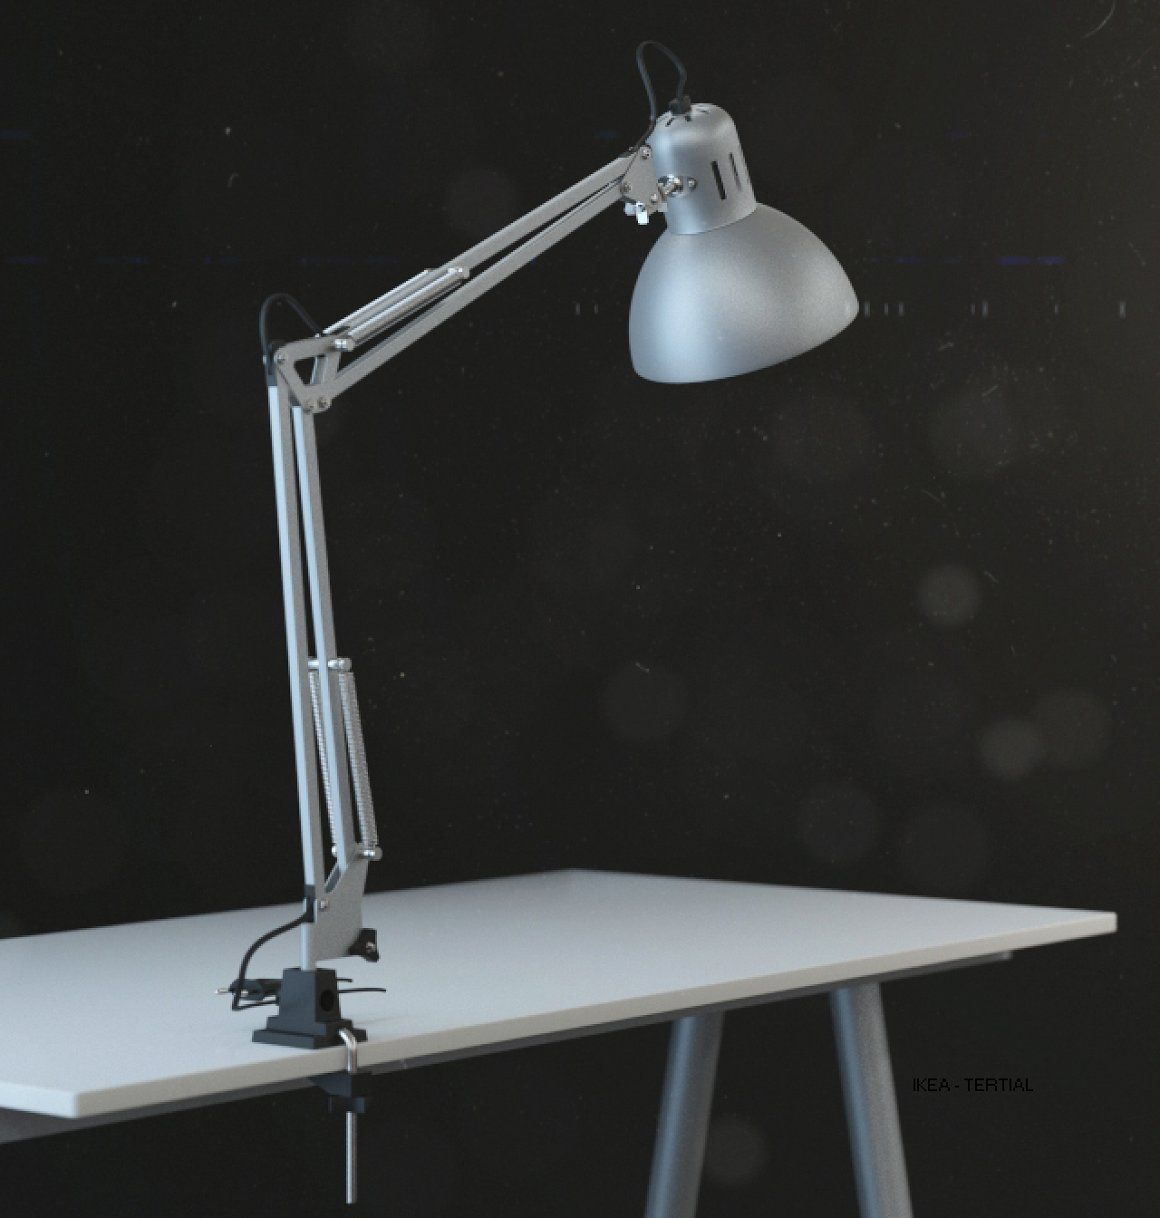 Ikea Tertial Work Lamp 3d Model Ikea Tertial Lamp White Real Size Office Lamp Corona Render V Ray Rendering Visualisation Int Ikea Table Lamp Lamp Work Lamp